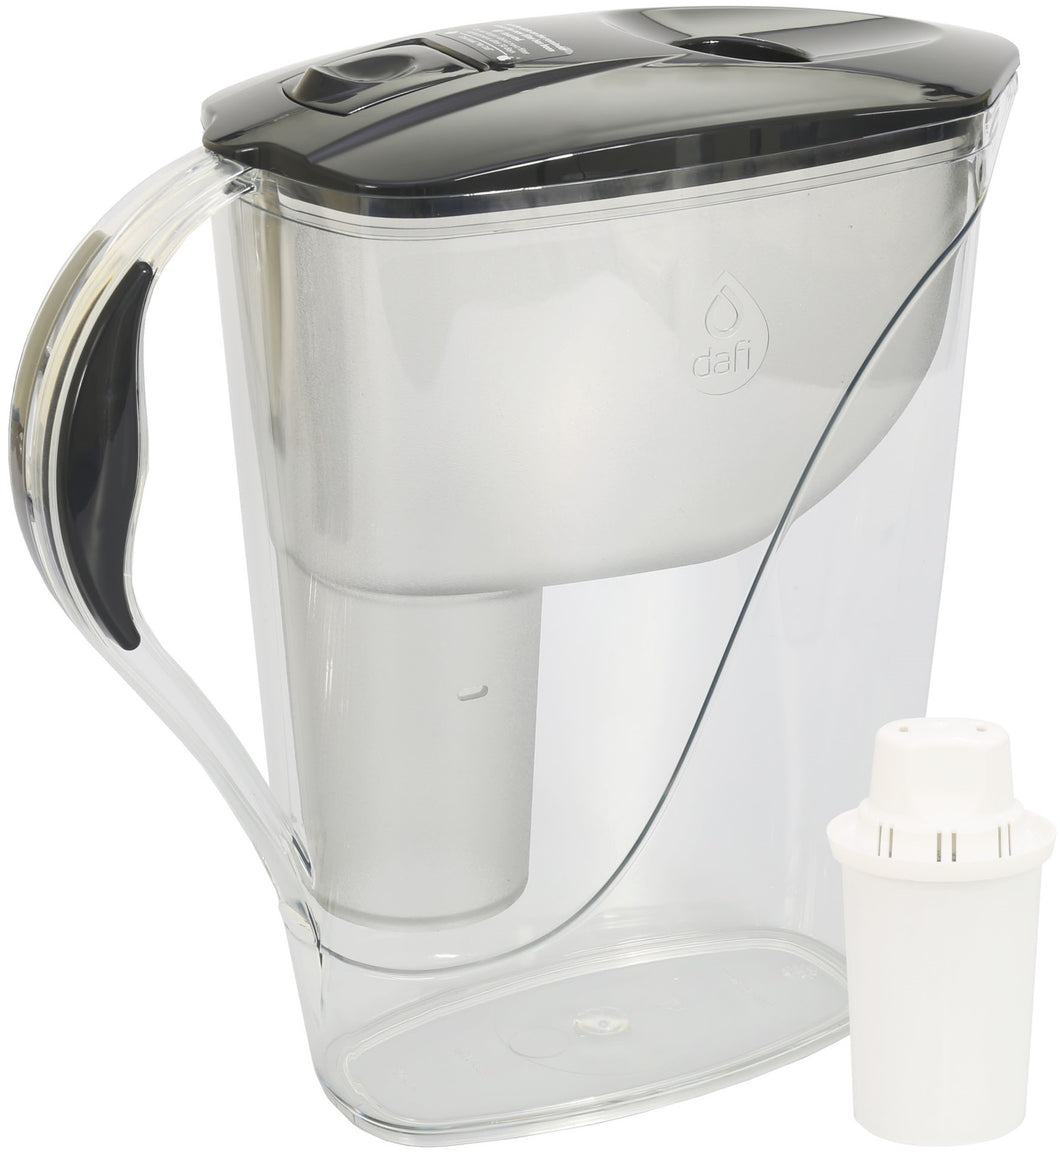 Water Filter Jug Dafi Luna Classic 3.3L with Free Filter Cartridge - Graphite - Prestige Cartridge